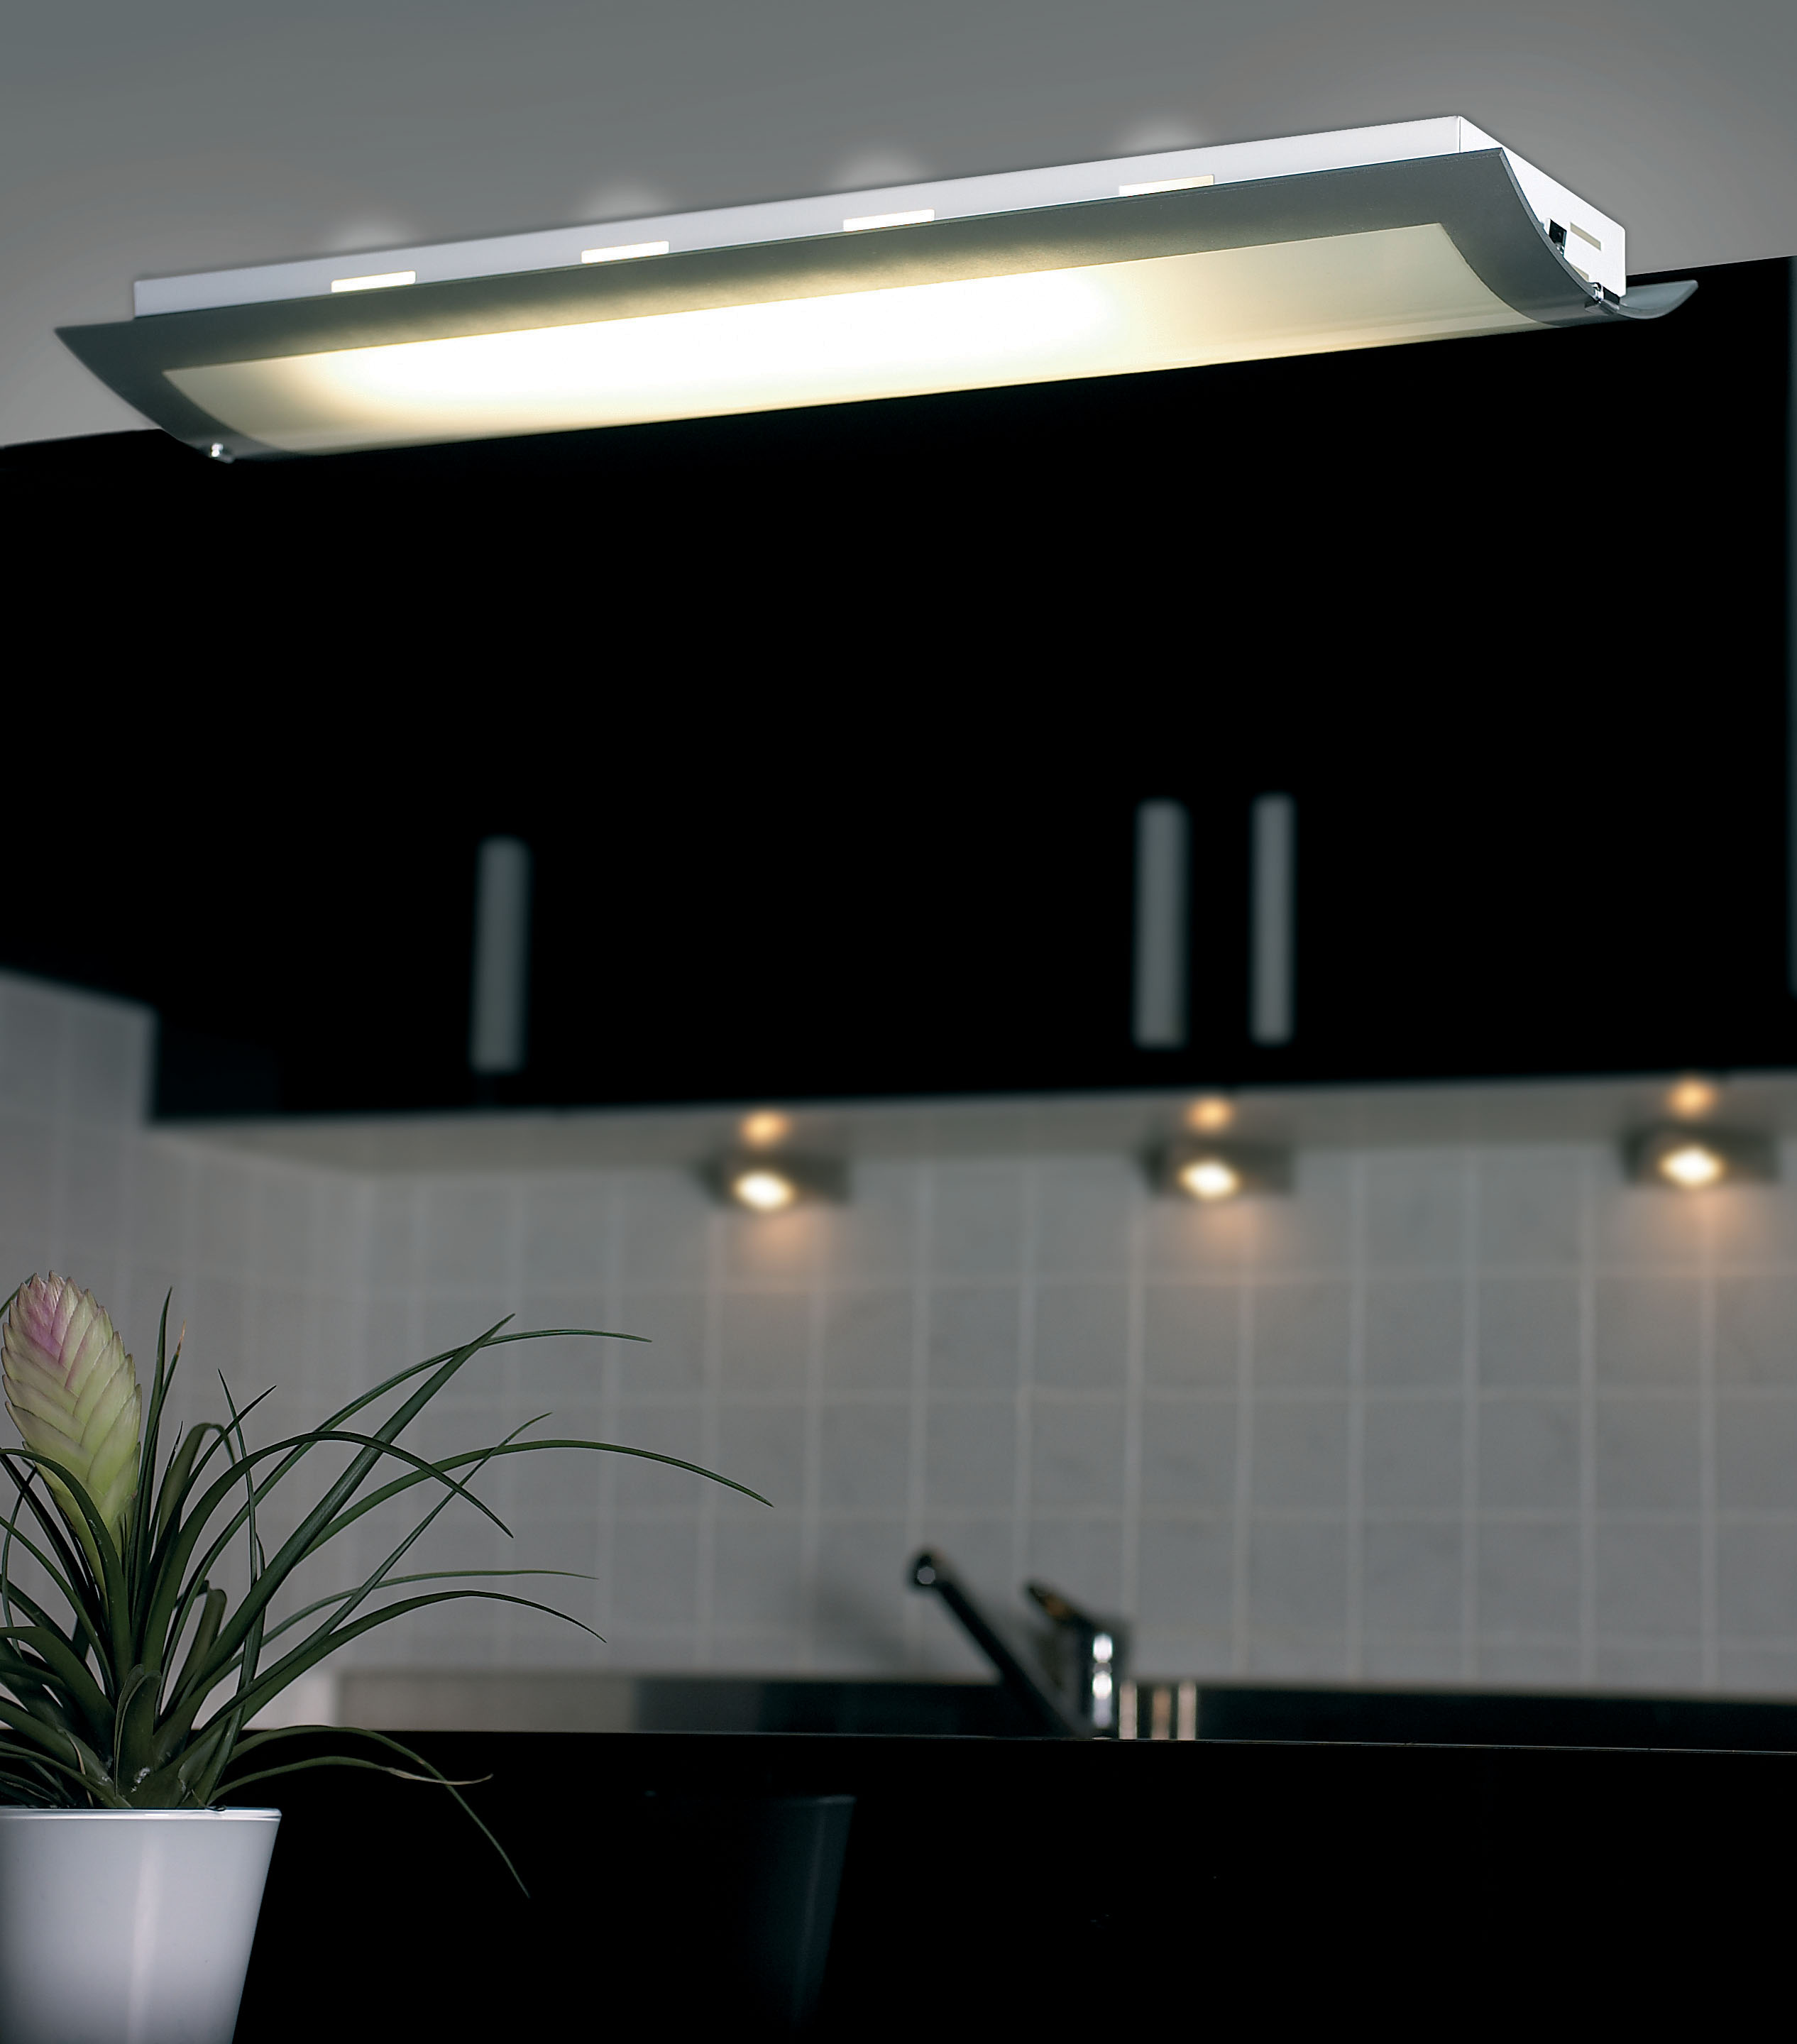 Modern led ceiling lights perfect illumination for your eyes eye health dailygadgetfo Images